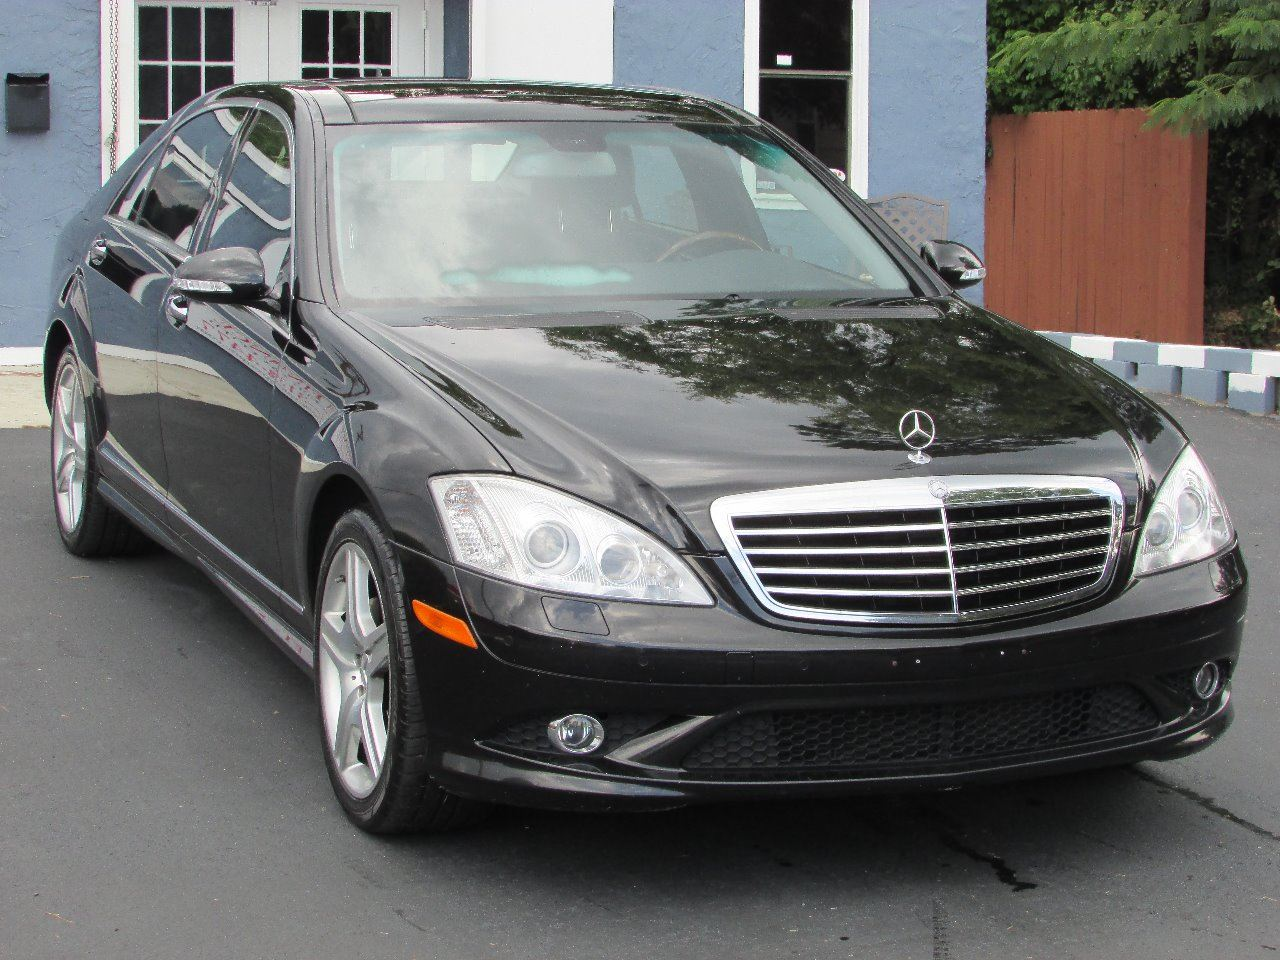 2007 mercedes benz s class awd s550 4matic 4dr sedan in charlotte nc. Cars Review. Best American Auto & Cars Review